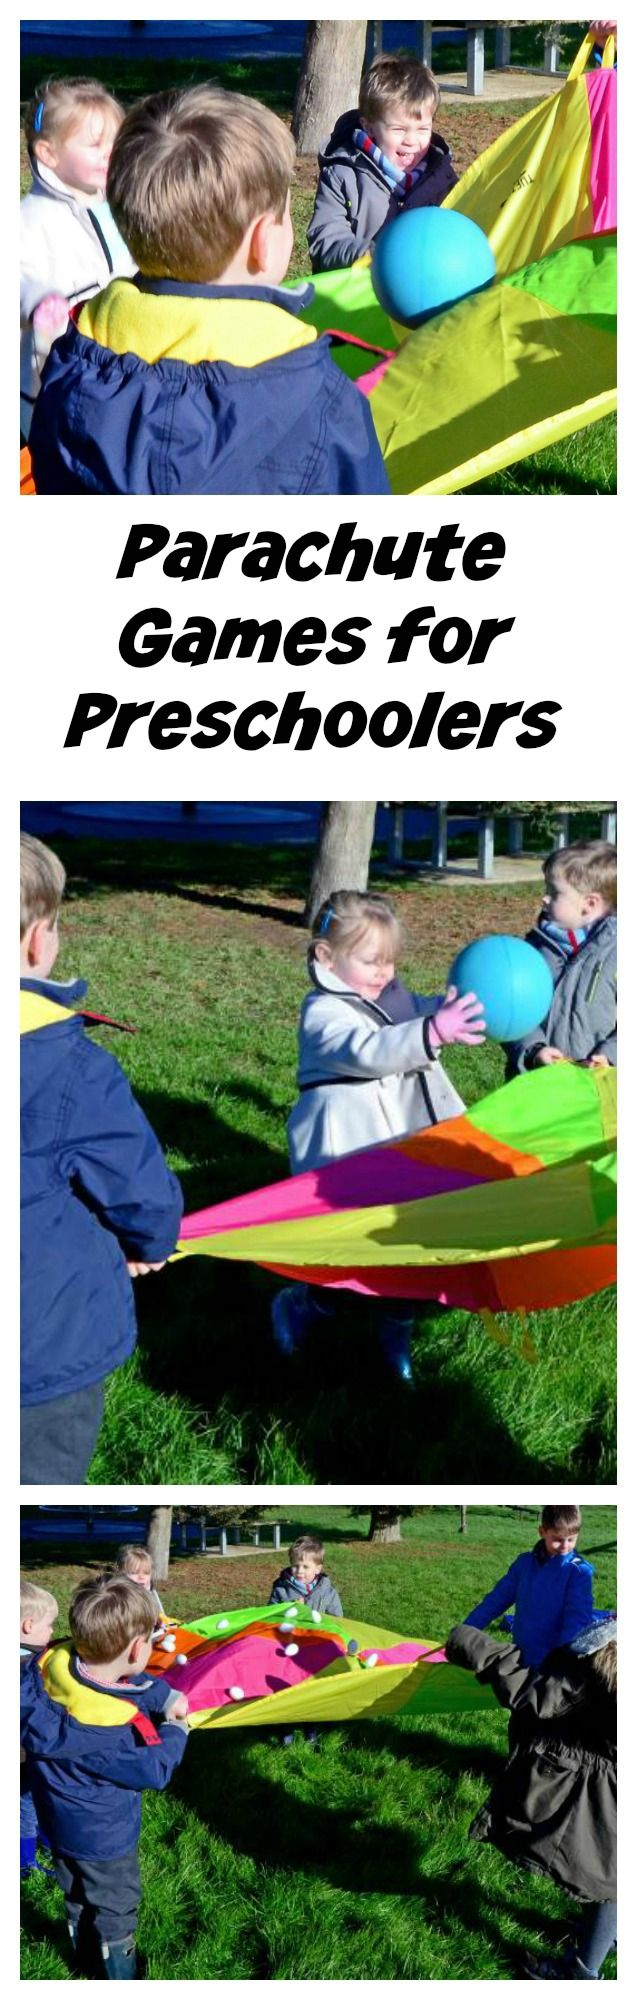 Parachute games for preschoolers Preschool Learning https://www.amazon.com/Kingseye-Painting-Education-Cognitive-Colouring/dp/B075C661CM